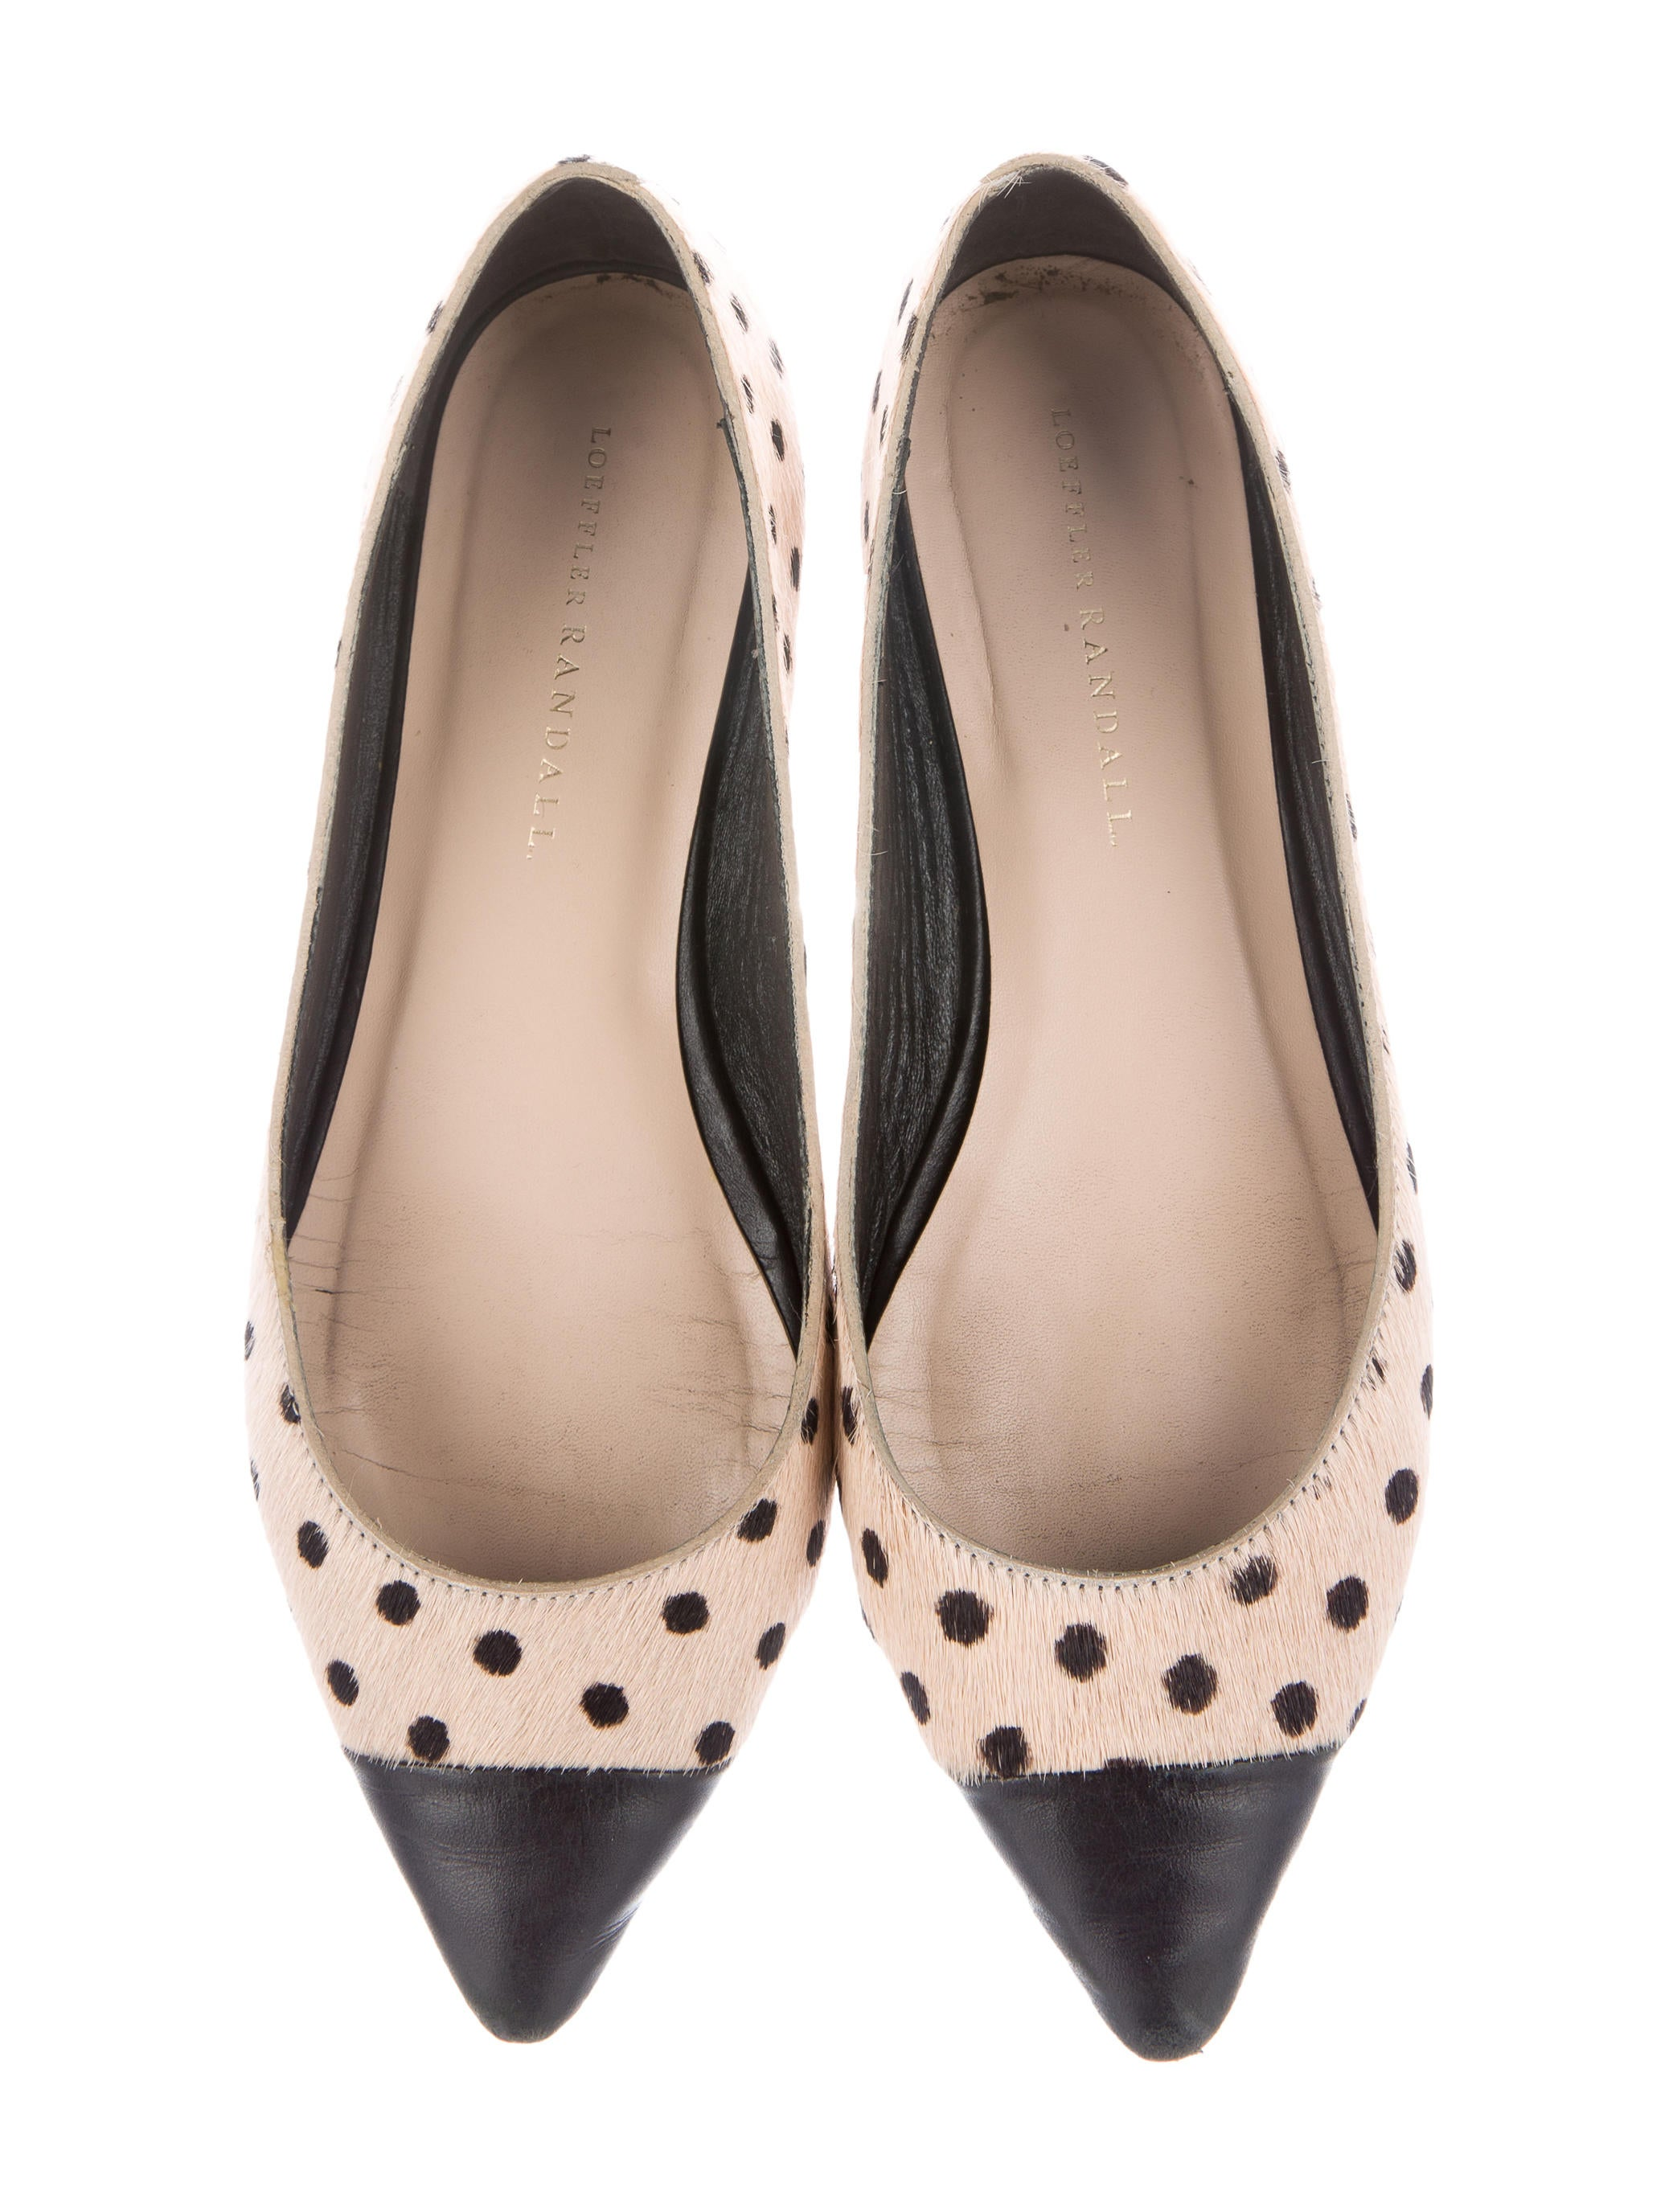 Vivacity Limits Flat // at Lovely Clusters Boutique Find this Pin and more on ♡ Polka Dot Flat Shoes ♡ by jazzi crafts. Vivacity Limits Flat (These are impossibly cute) Vivacity Limits Flat - love the shape, detailing, color, but not the polka dots.